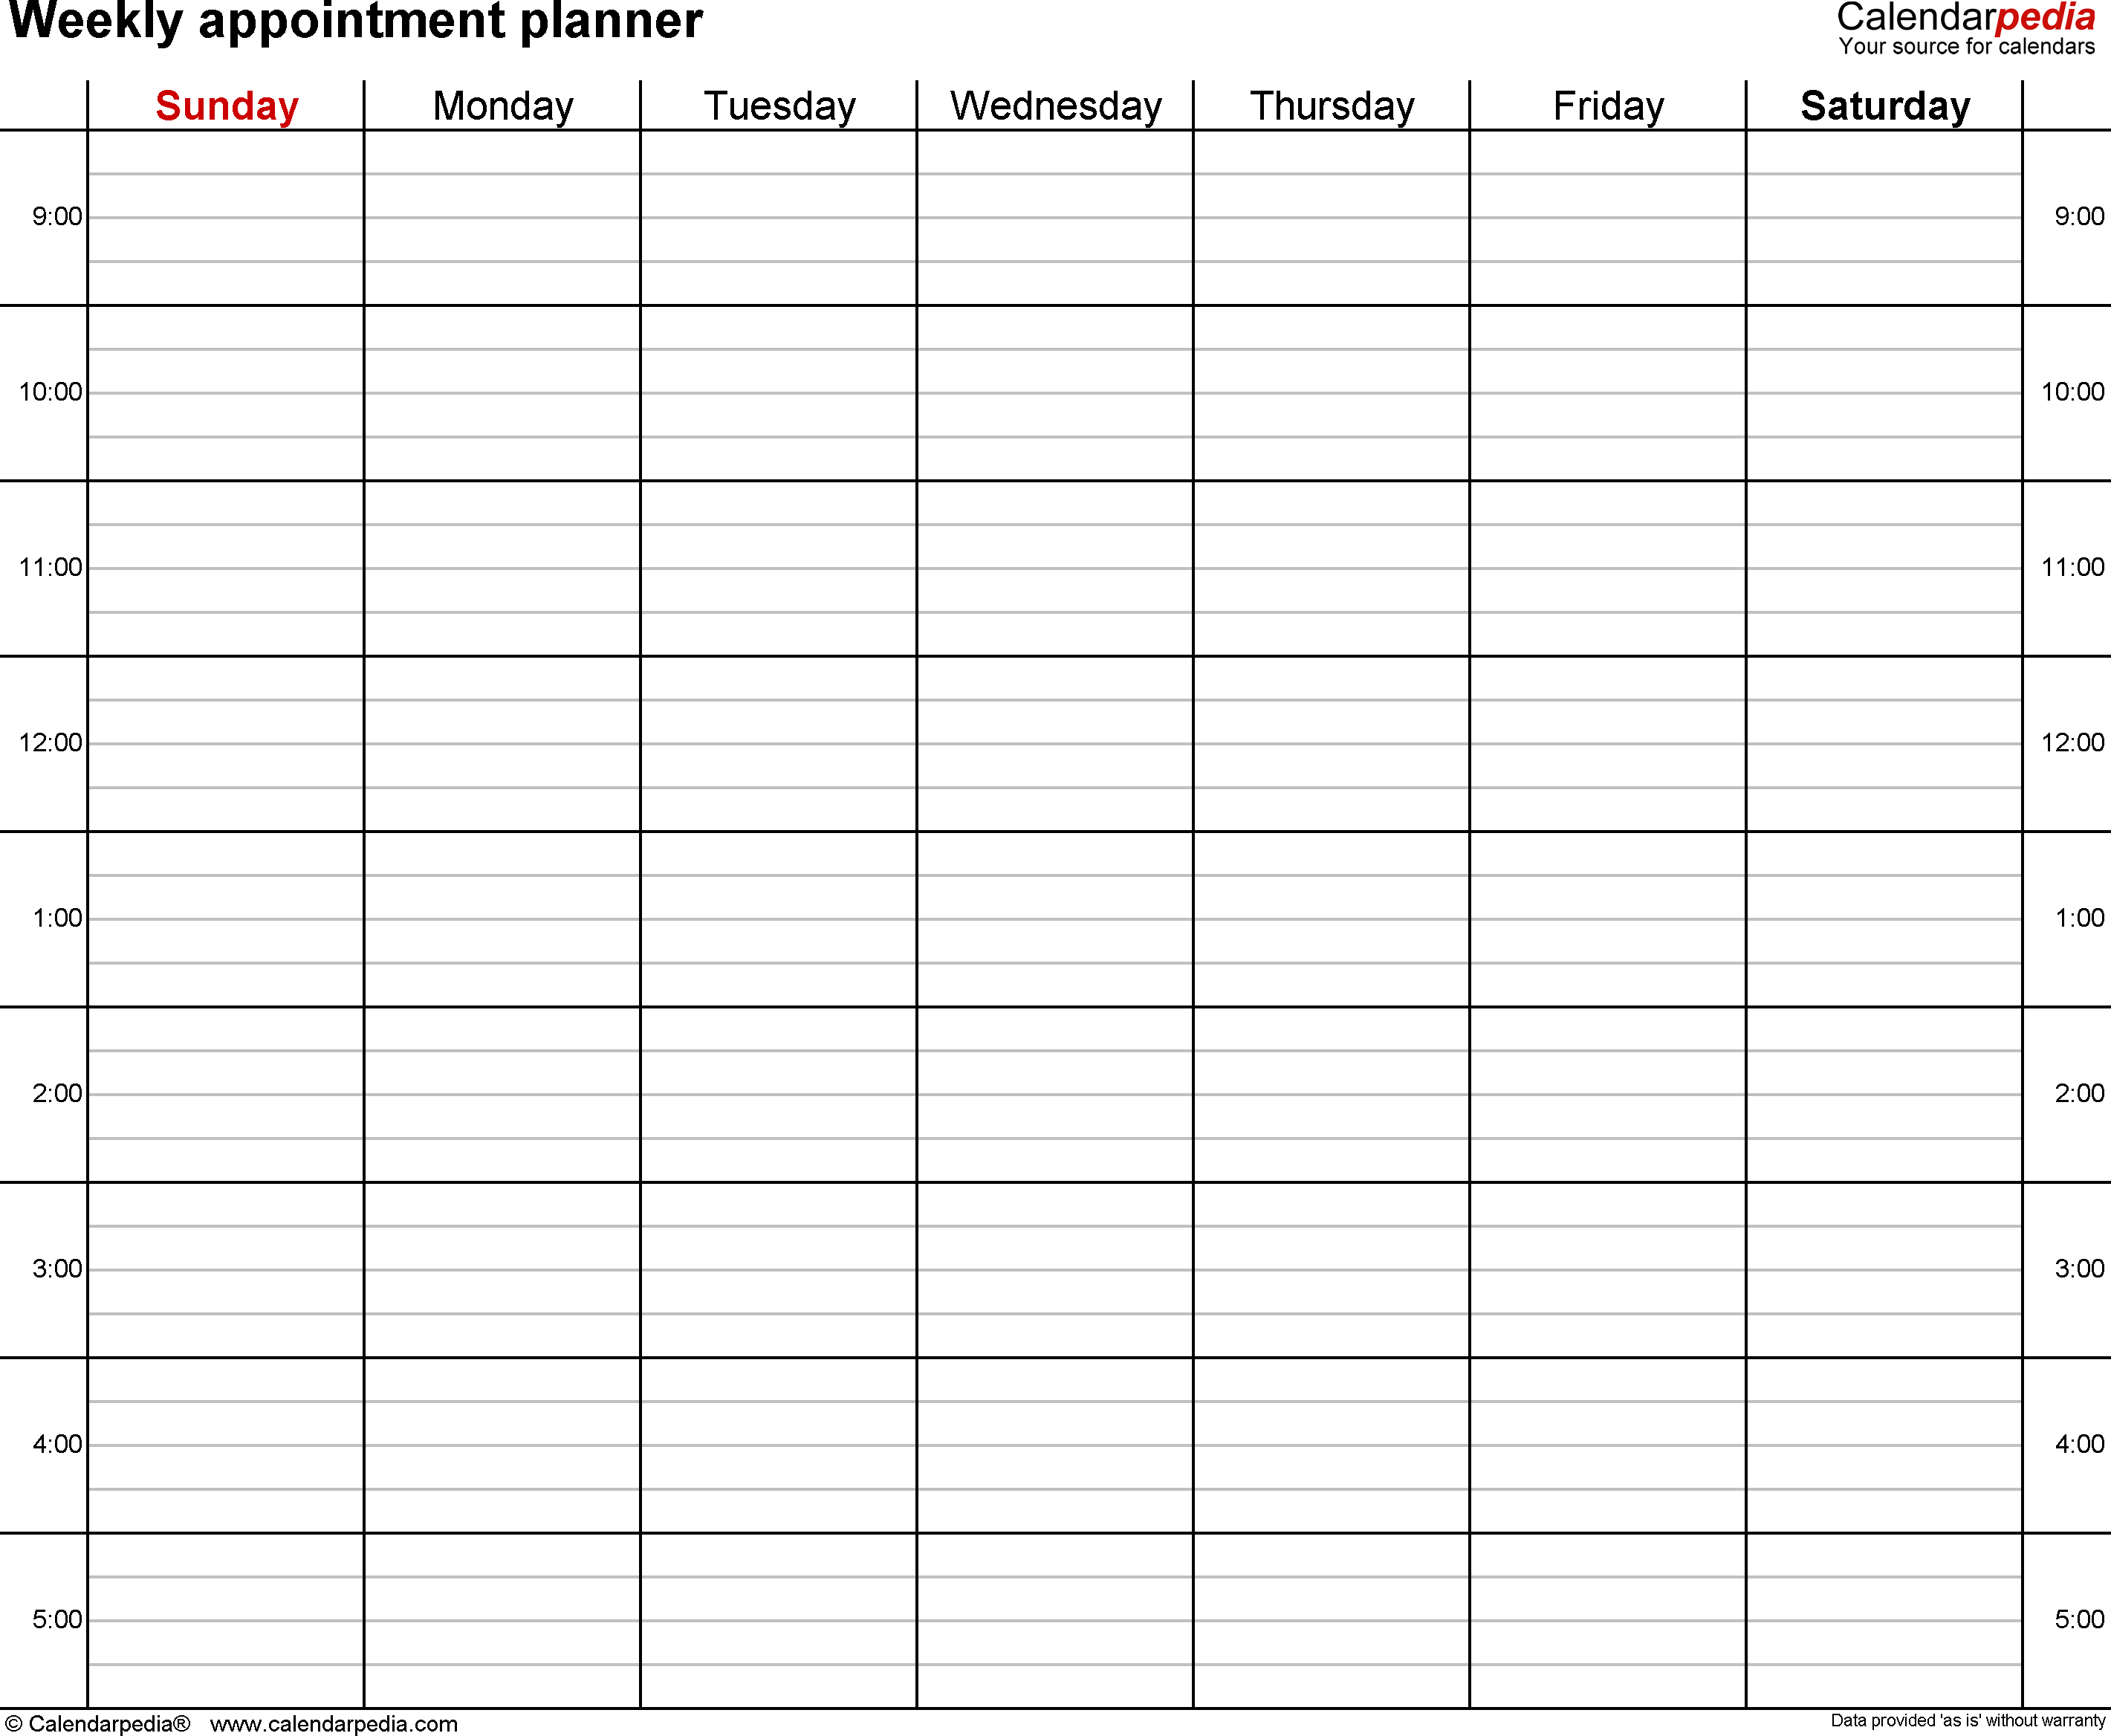 Free Weekly Planners for Microsoft Word - 21+ Templates Inside Appointment Sheet Template Word